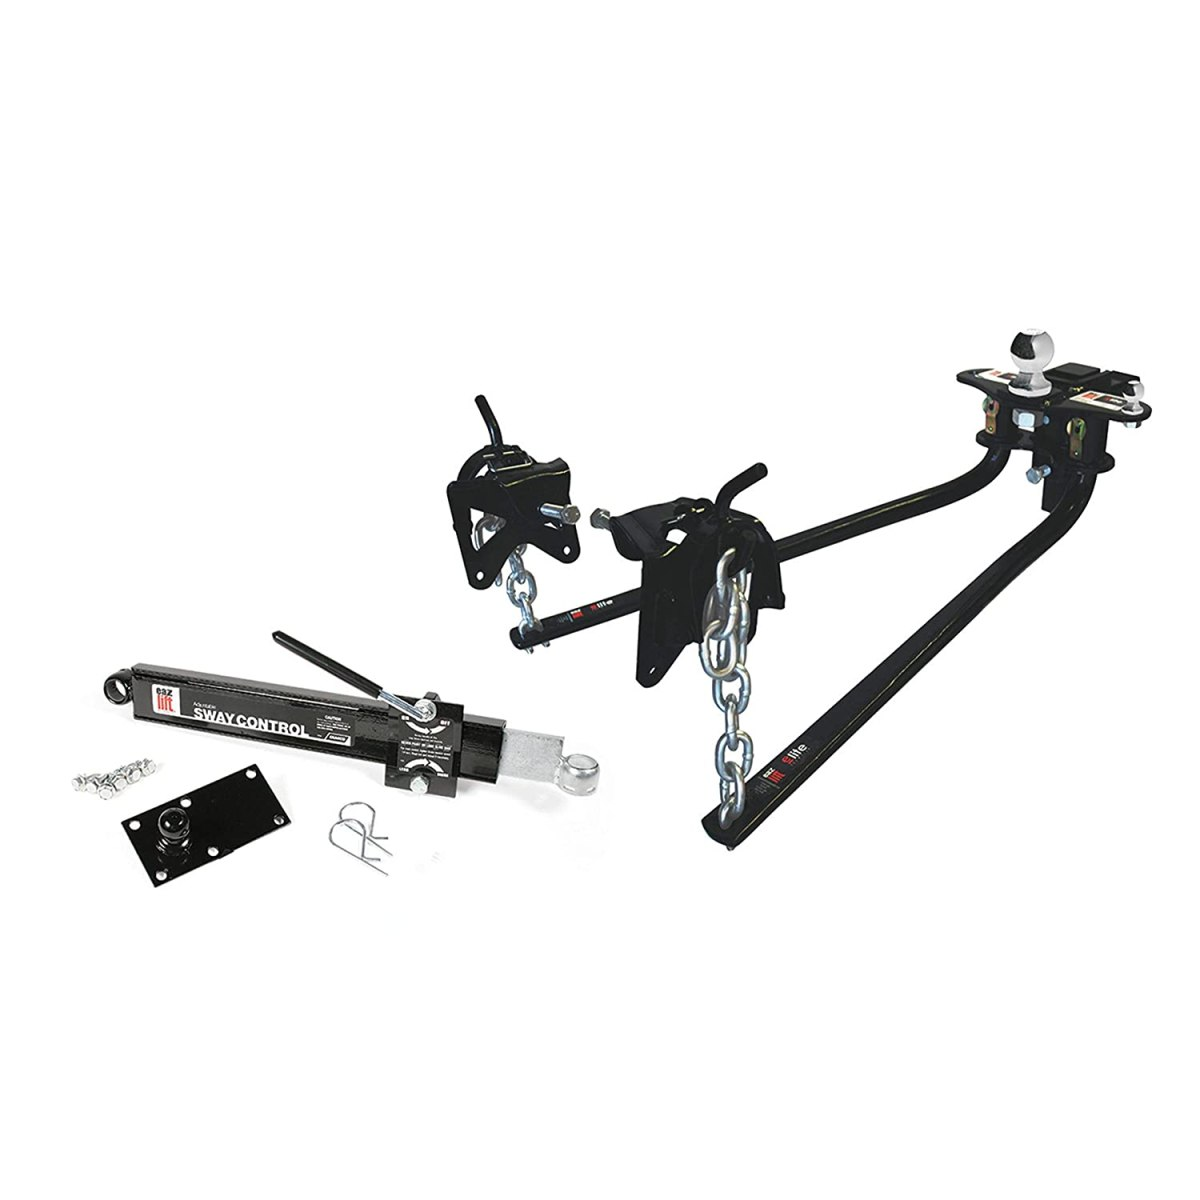 Best Weight Distribution Hitches EAZ LIFT 48069 1200 lbs Elite Kit Weight Distribution Hitch